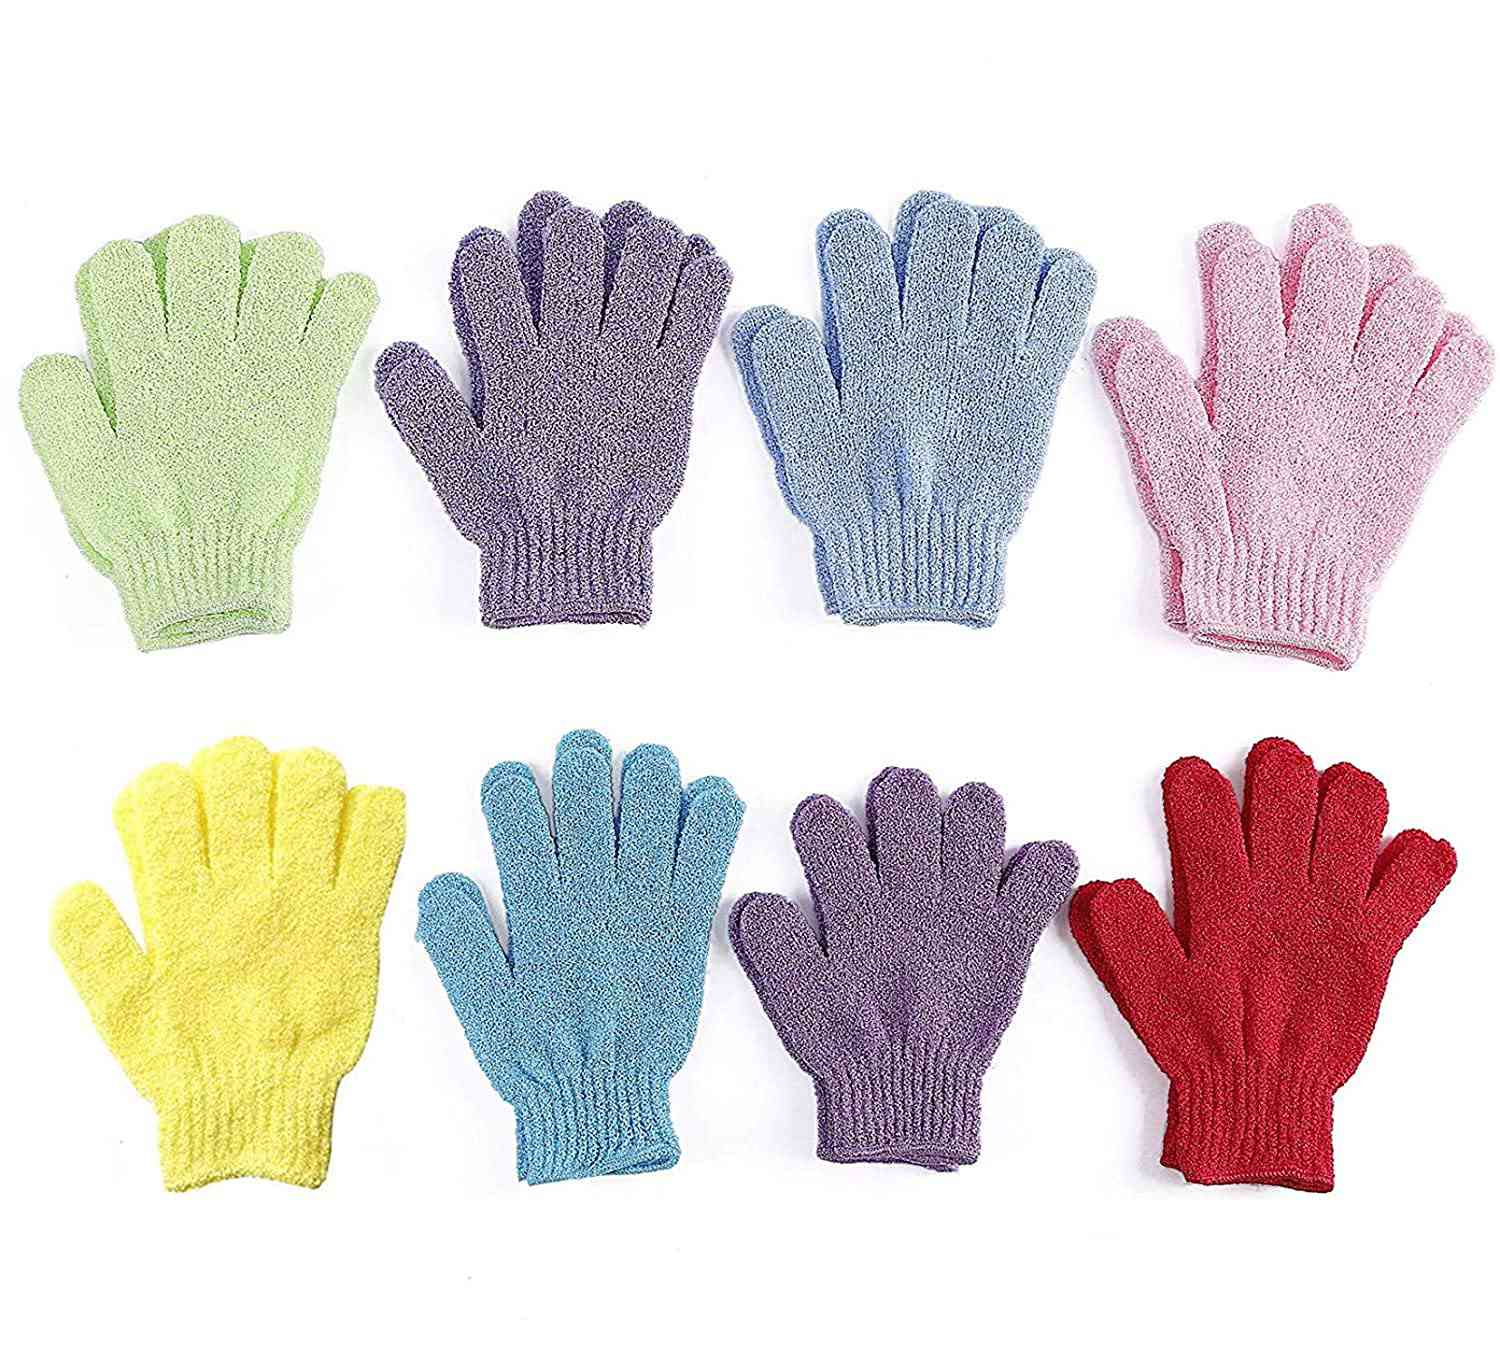 Mooerca Double-Sided Exfoliating Gloves, 8 Pairs